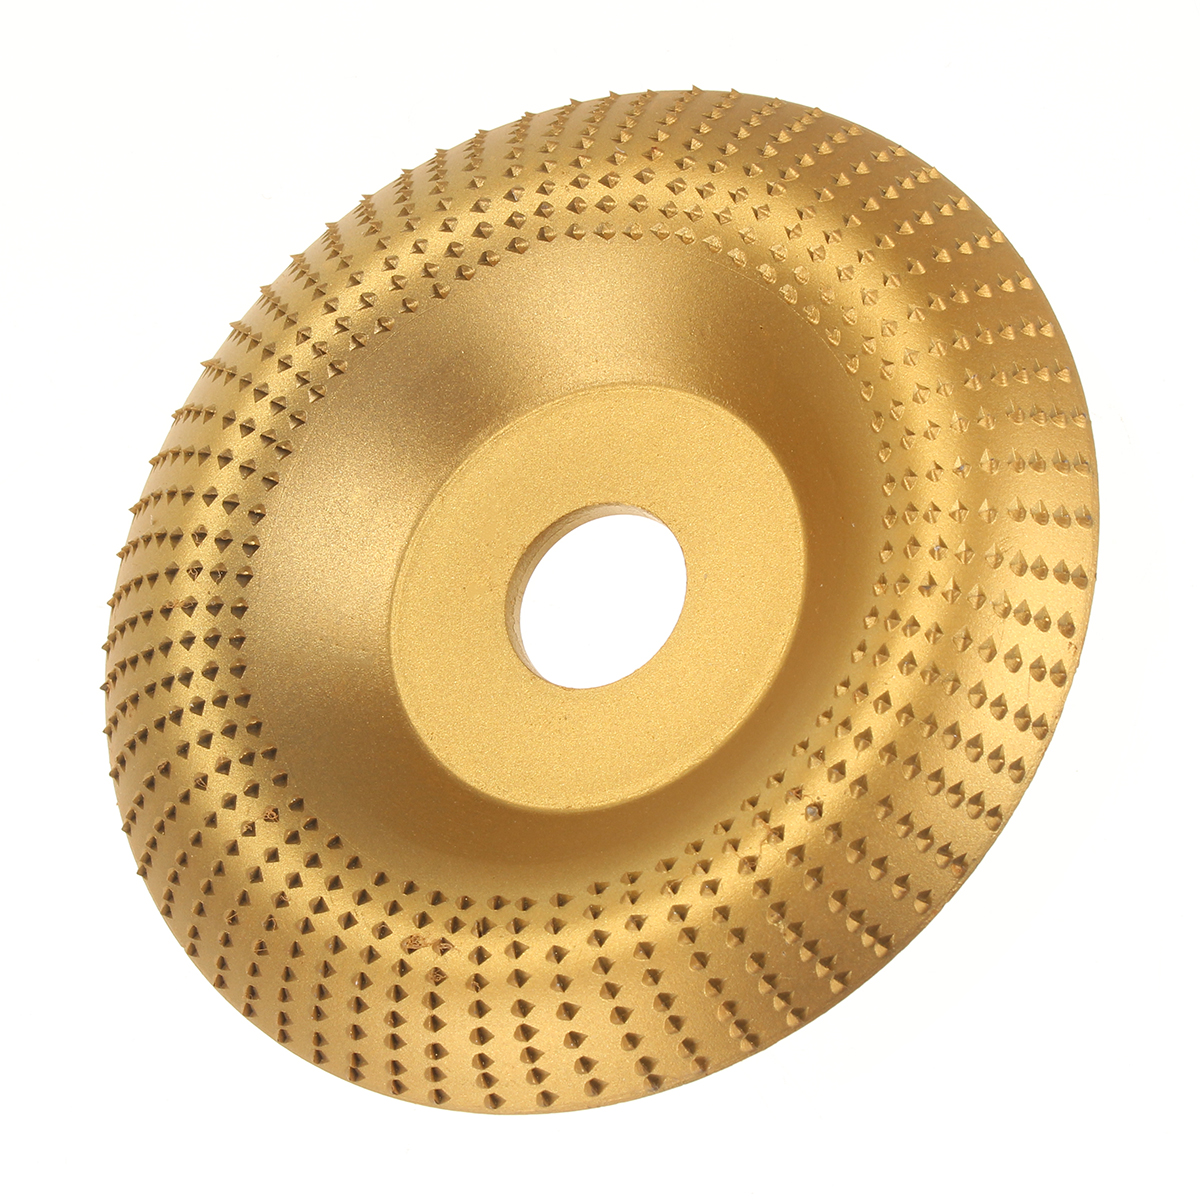 Wood Grinding Wheel Angle Grinder Disc Wood Carving Disc Sanding Abrasive Tool 16mm Bore